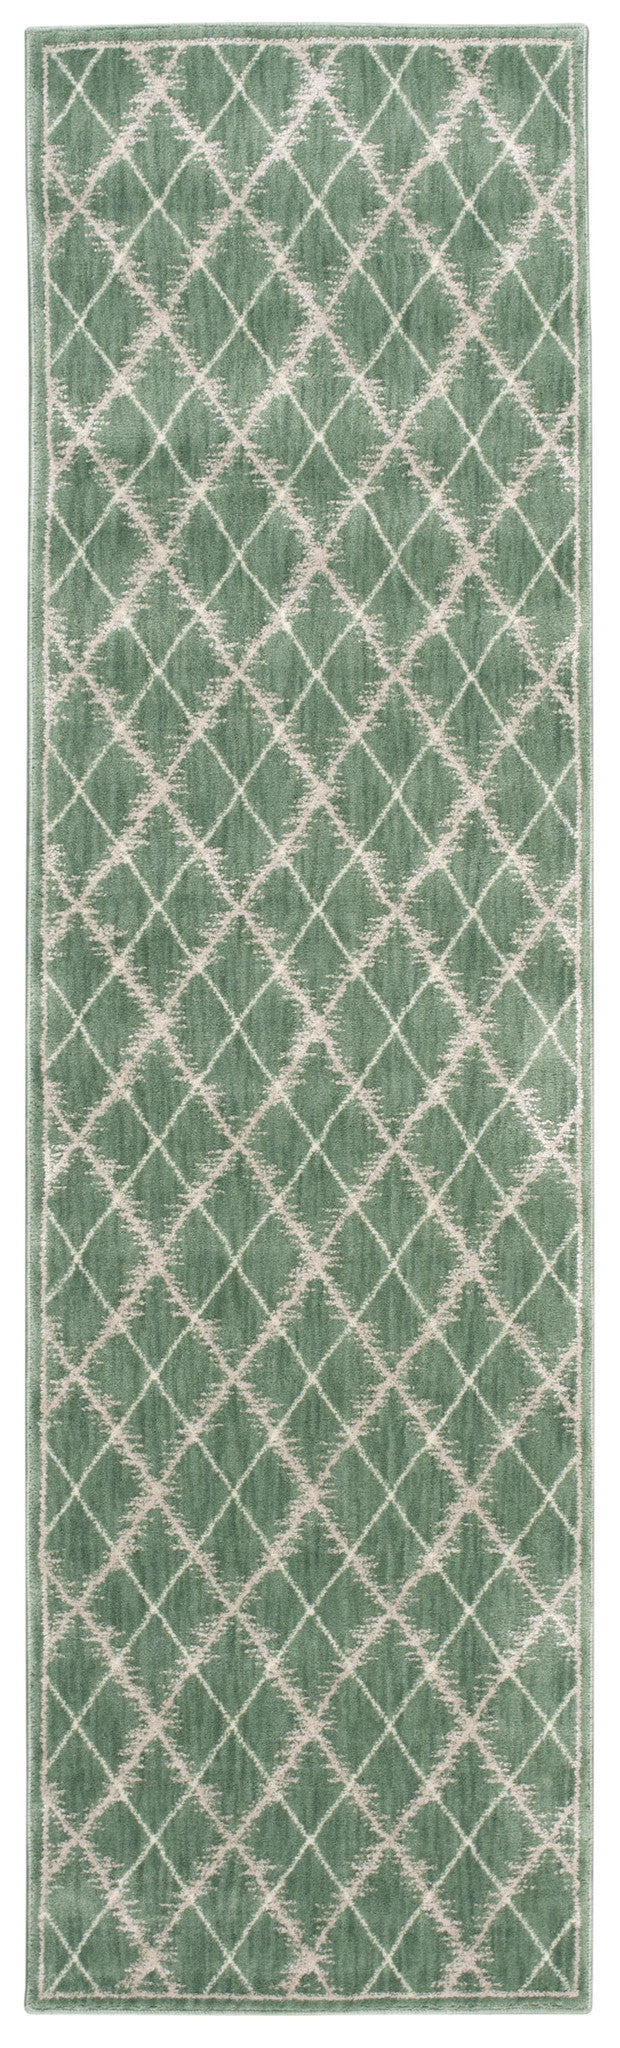 Nourison Tranquility Light Green Area Rug TNQ01 LTG